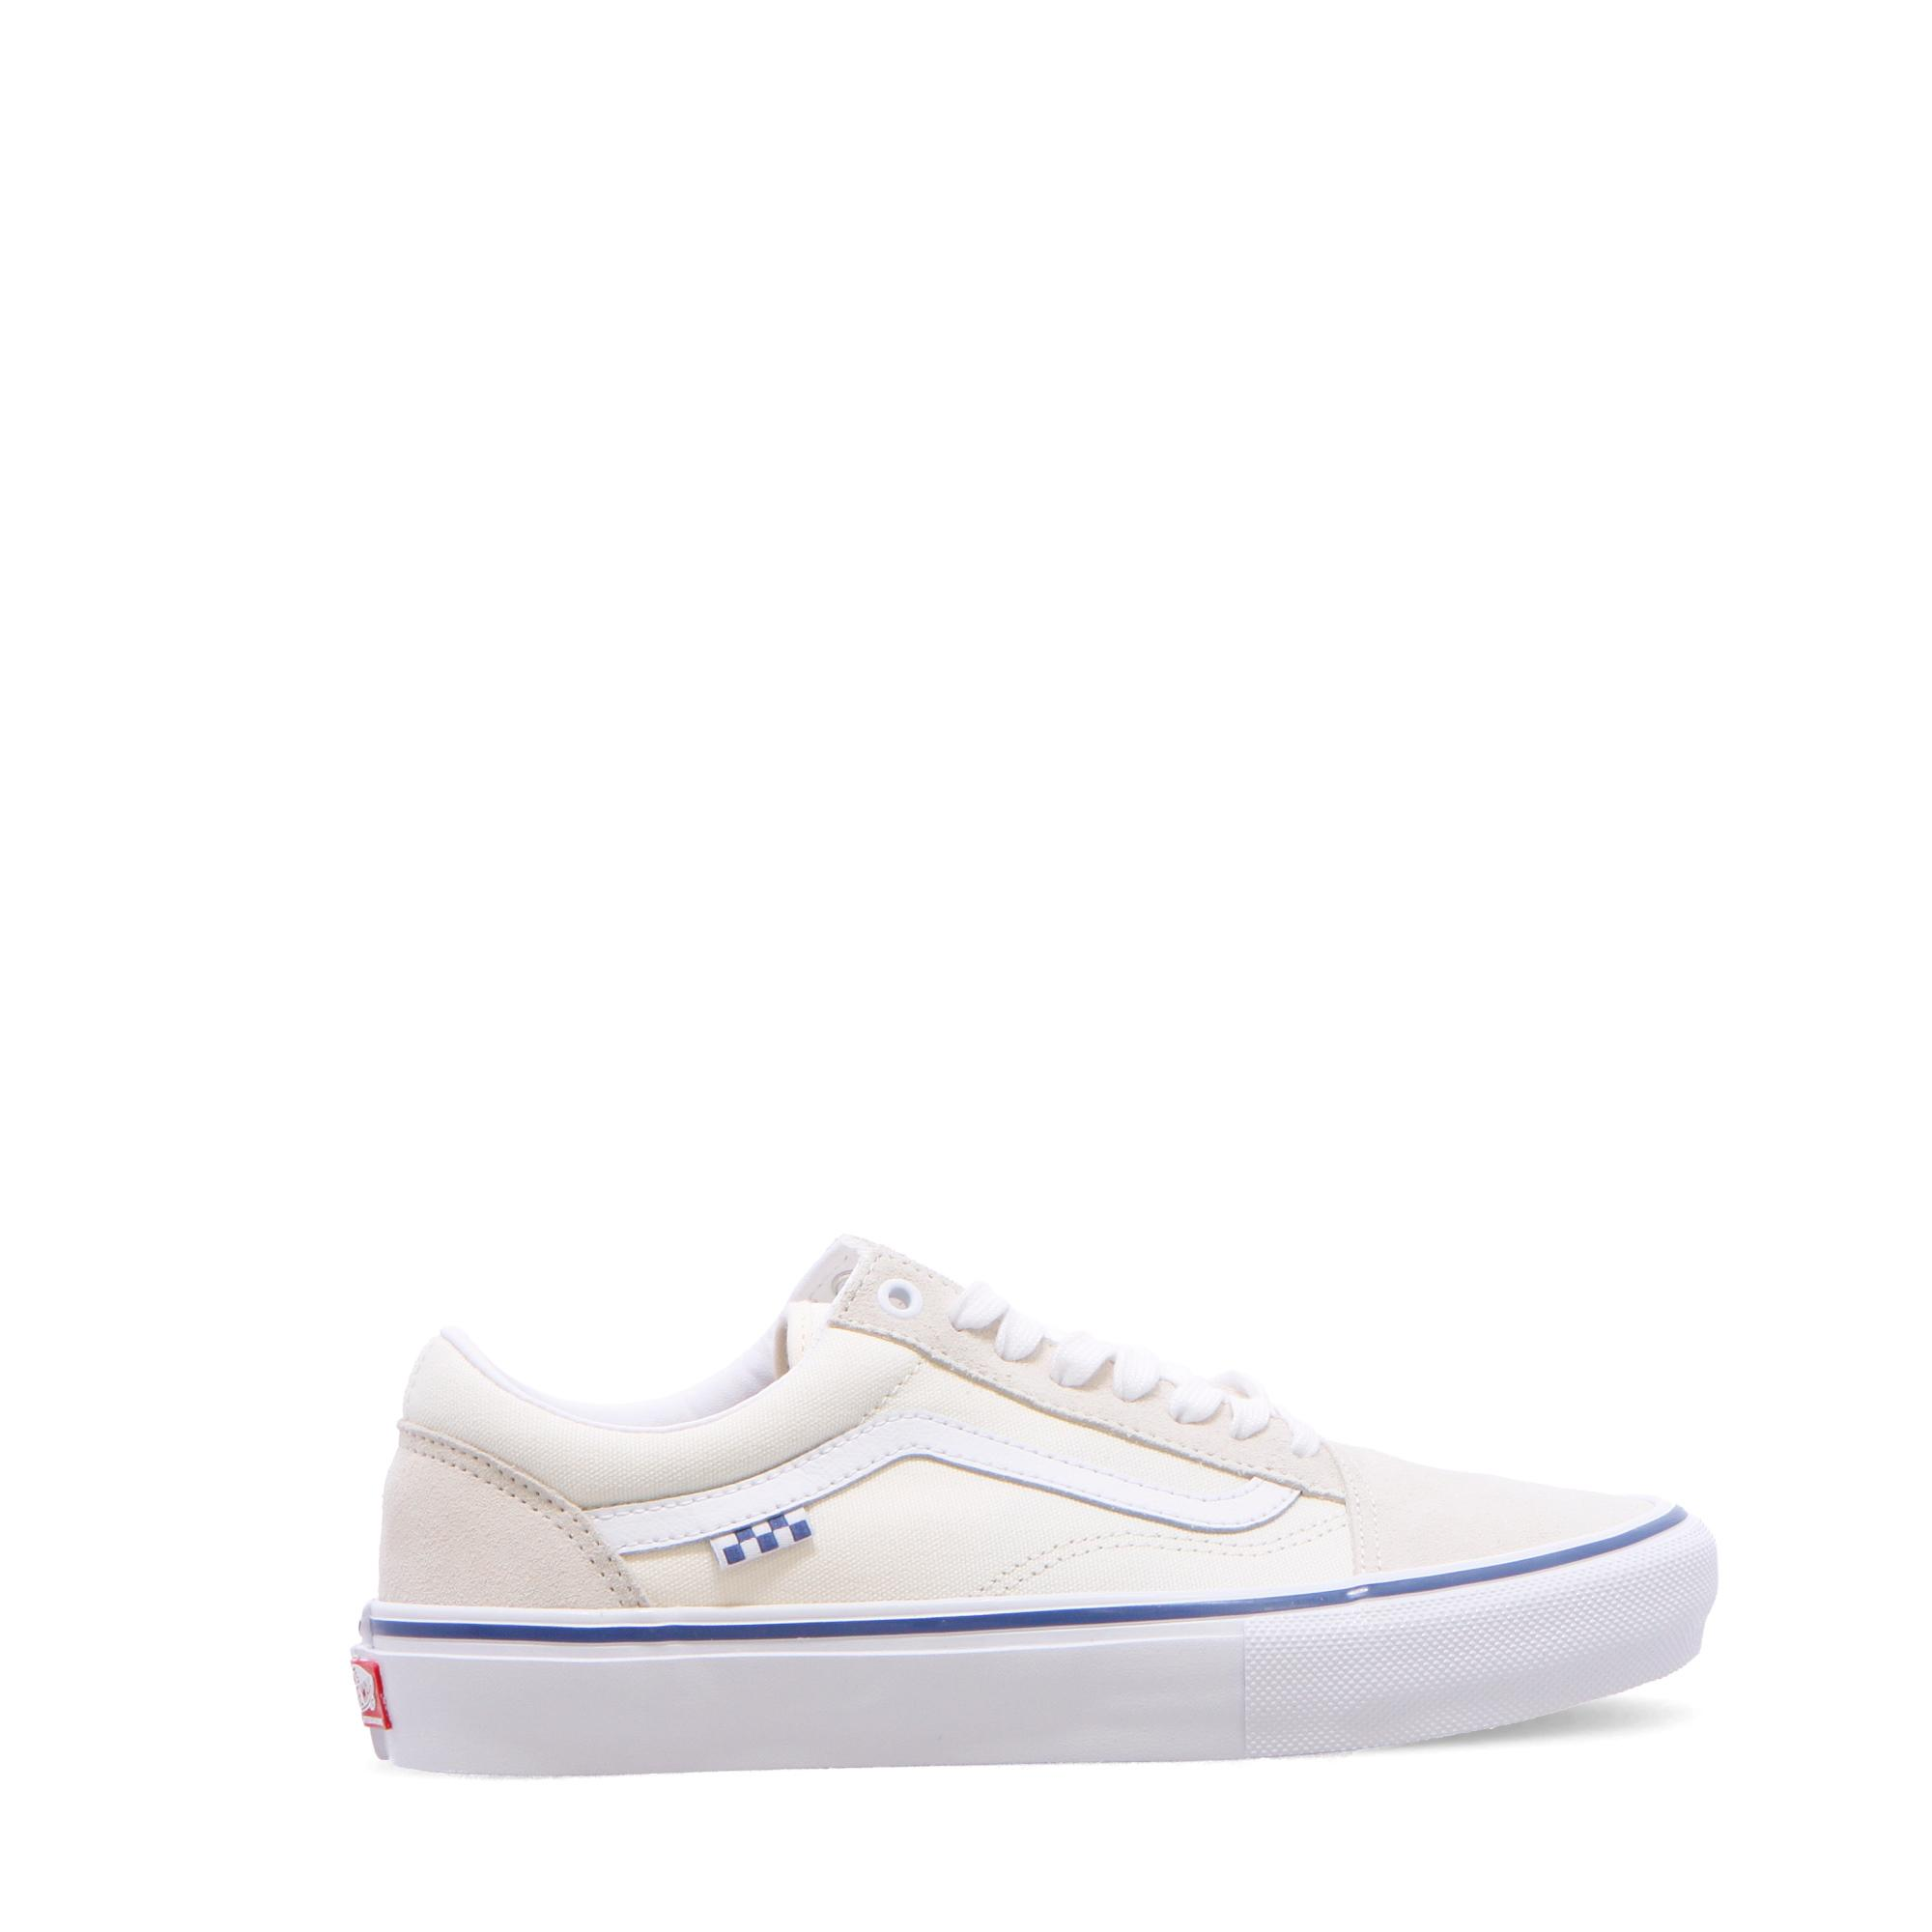 Vans Mn Skate Old Skool OFF WHITE